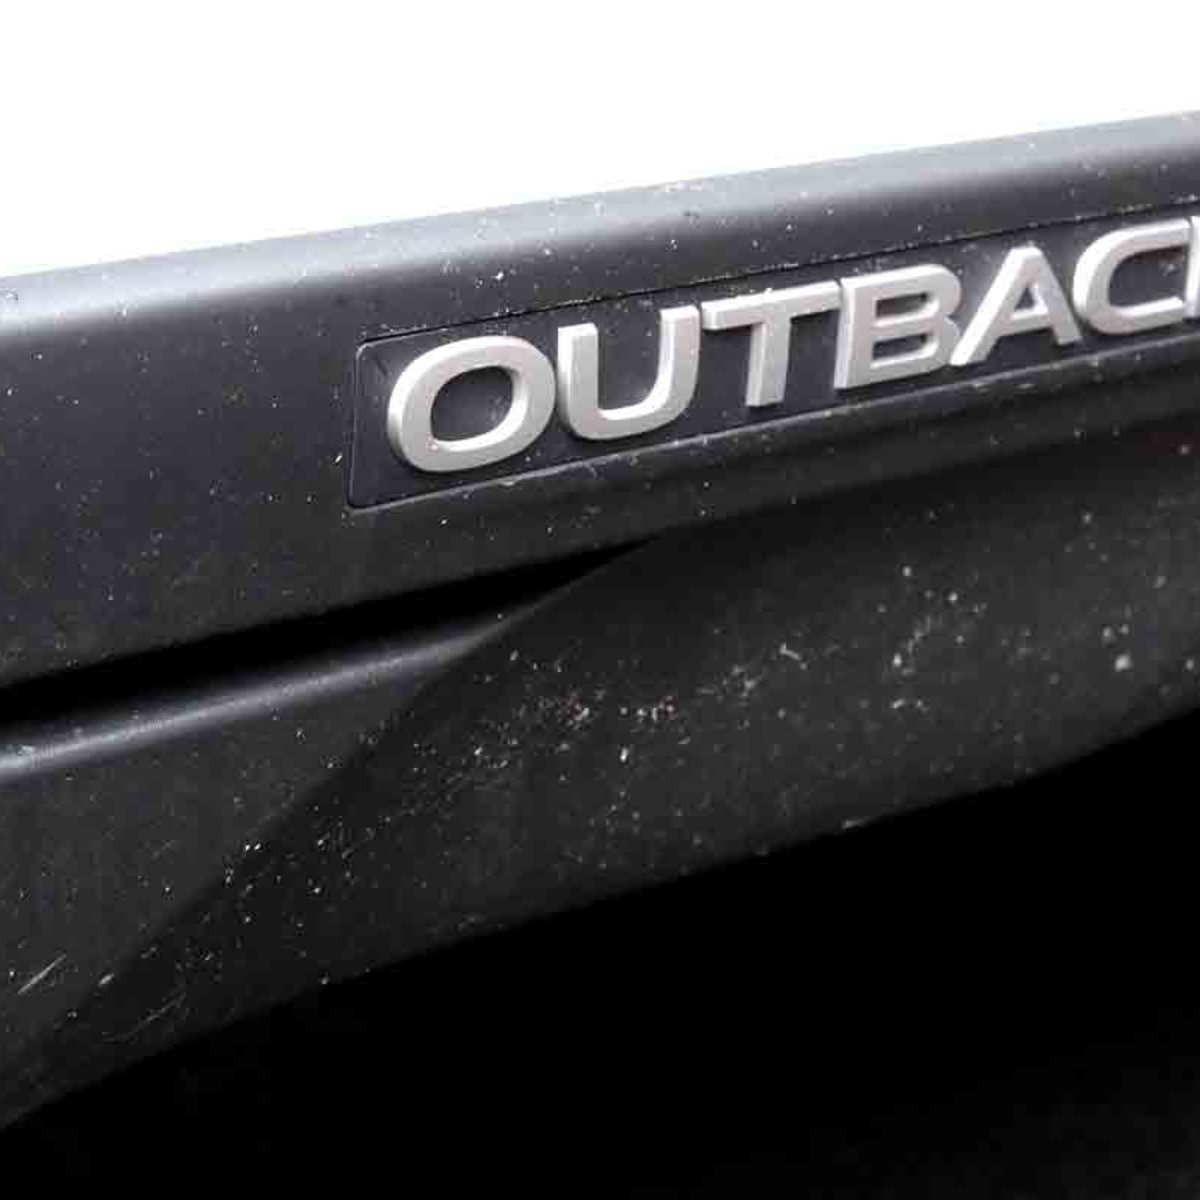 2015 Subaru Outback: Calm, Cool, Connected  - Reviewed Cars